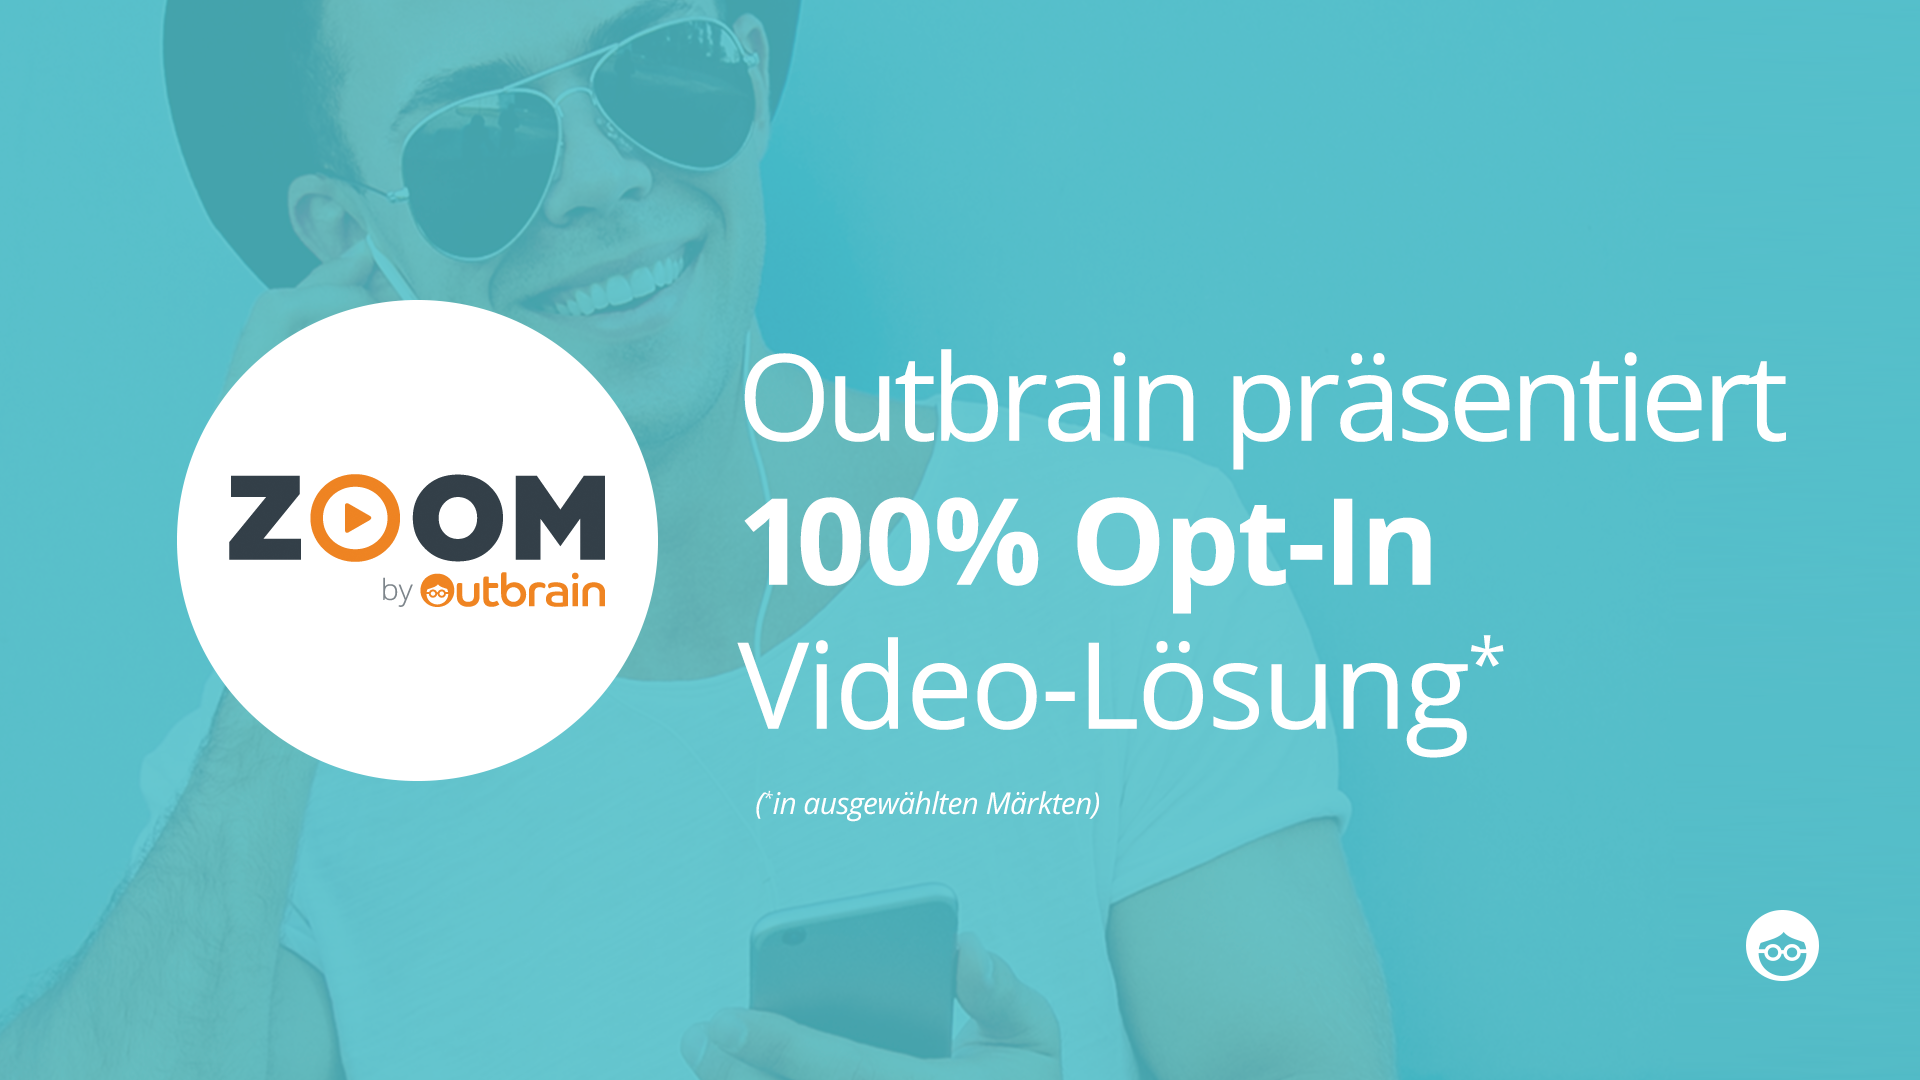 Outbrain ZOOM